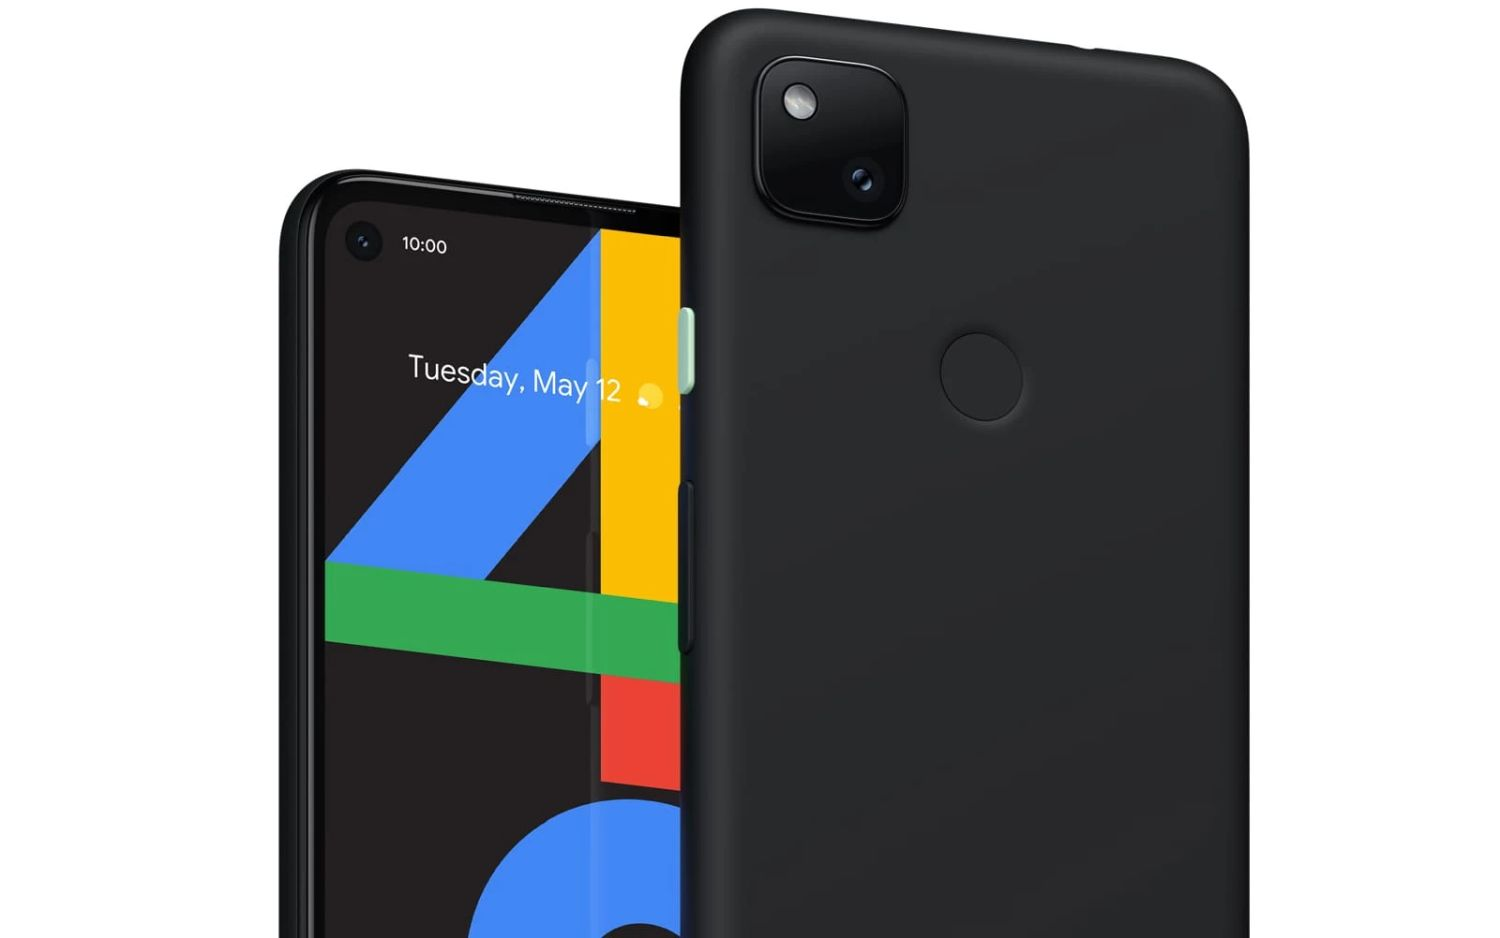 pixel 4a official image